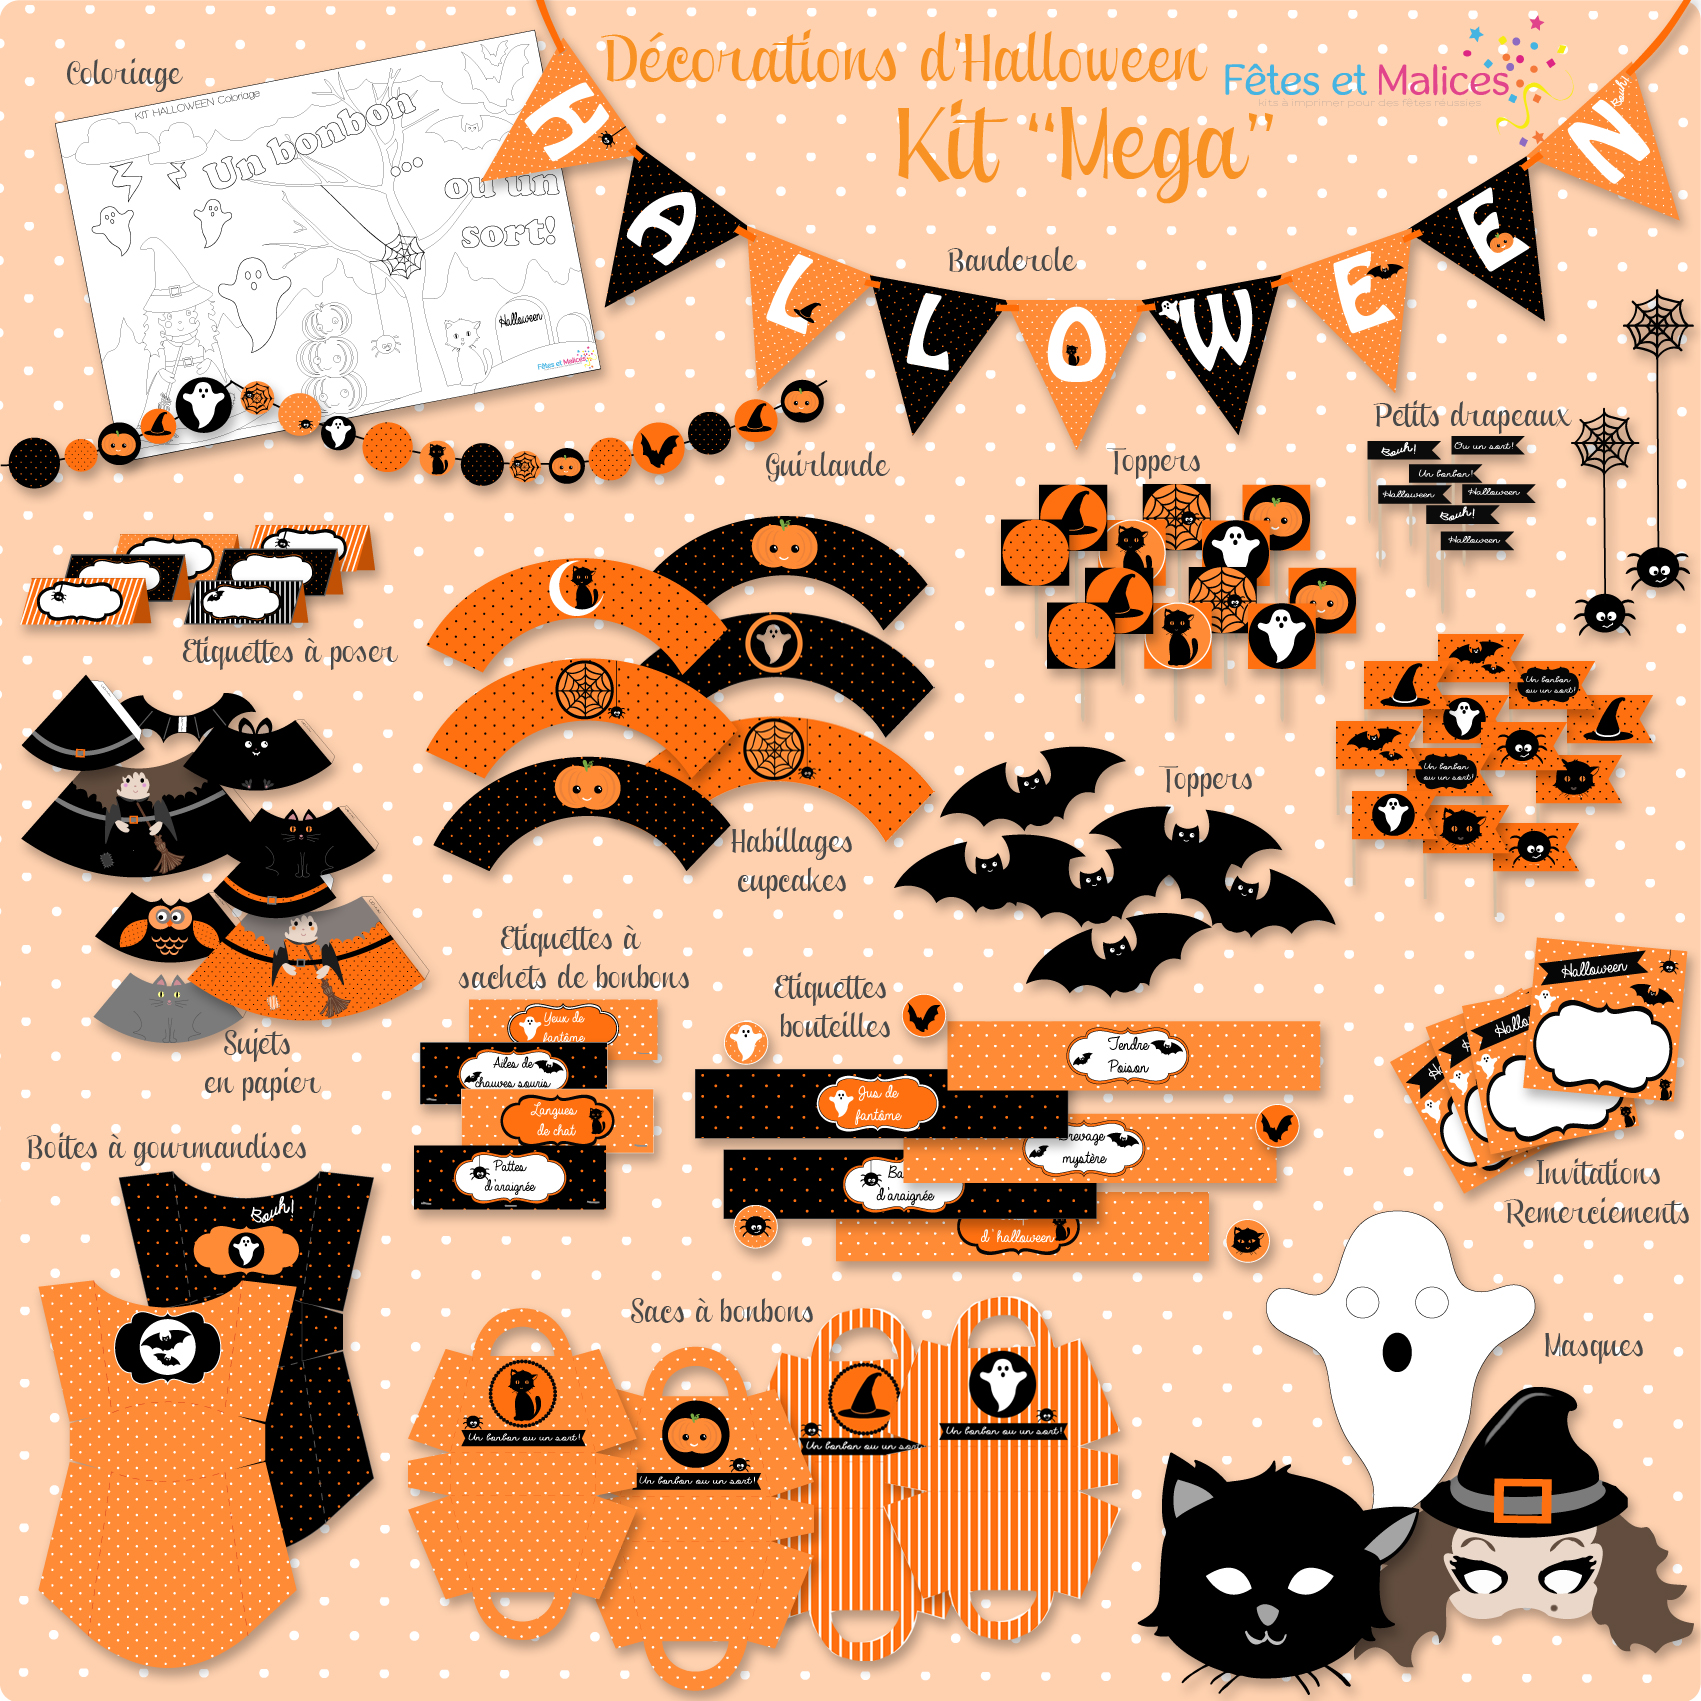 Kit d co d 39 halloween imprimer printable sweet table - Comment faire des decoration d halloween ...